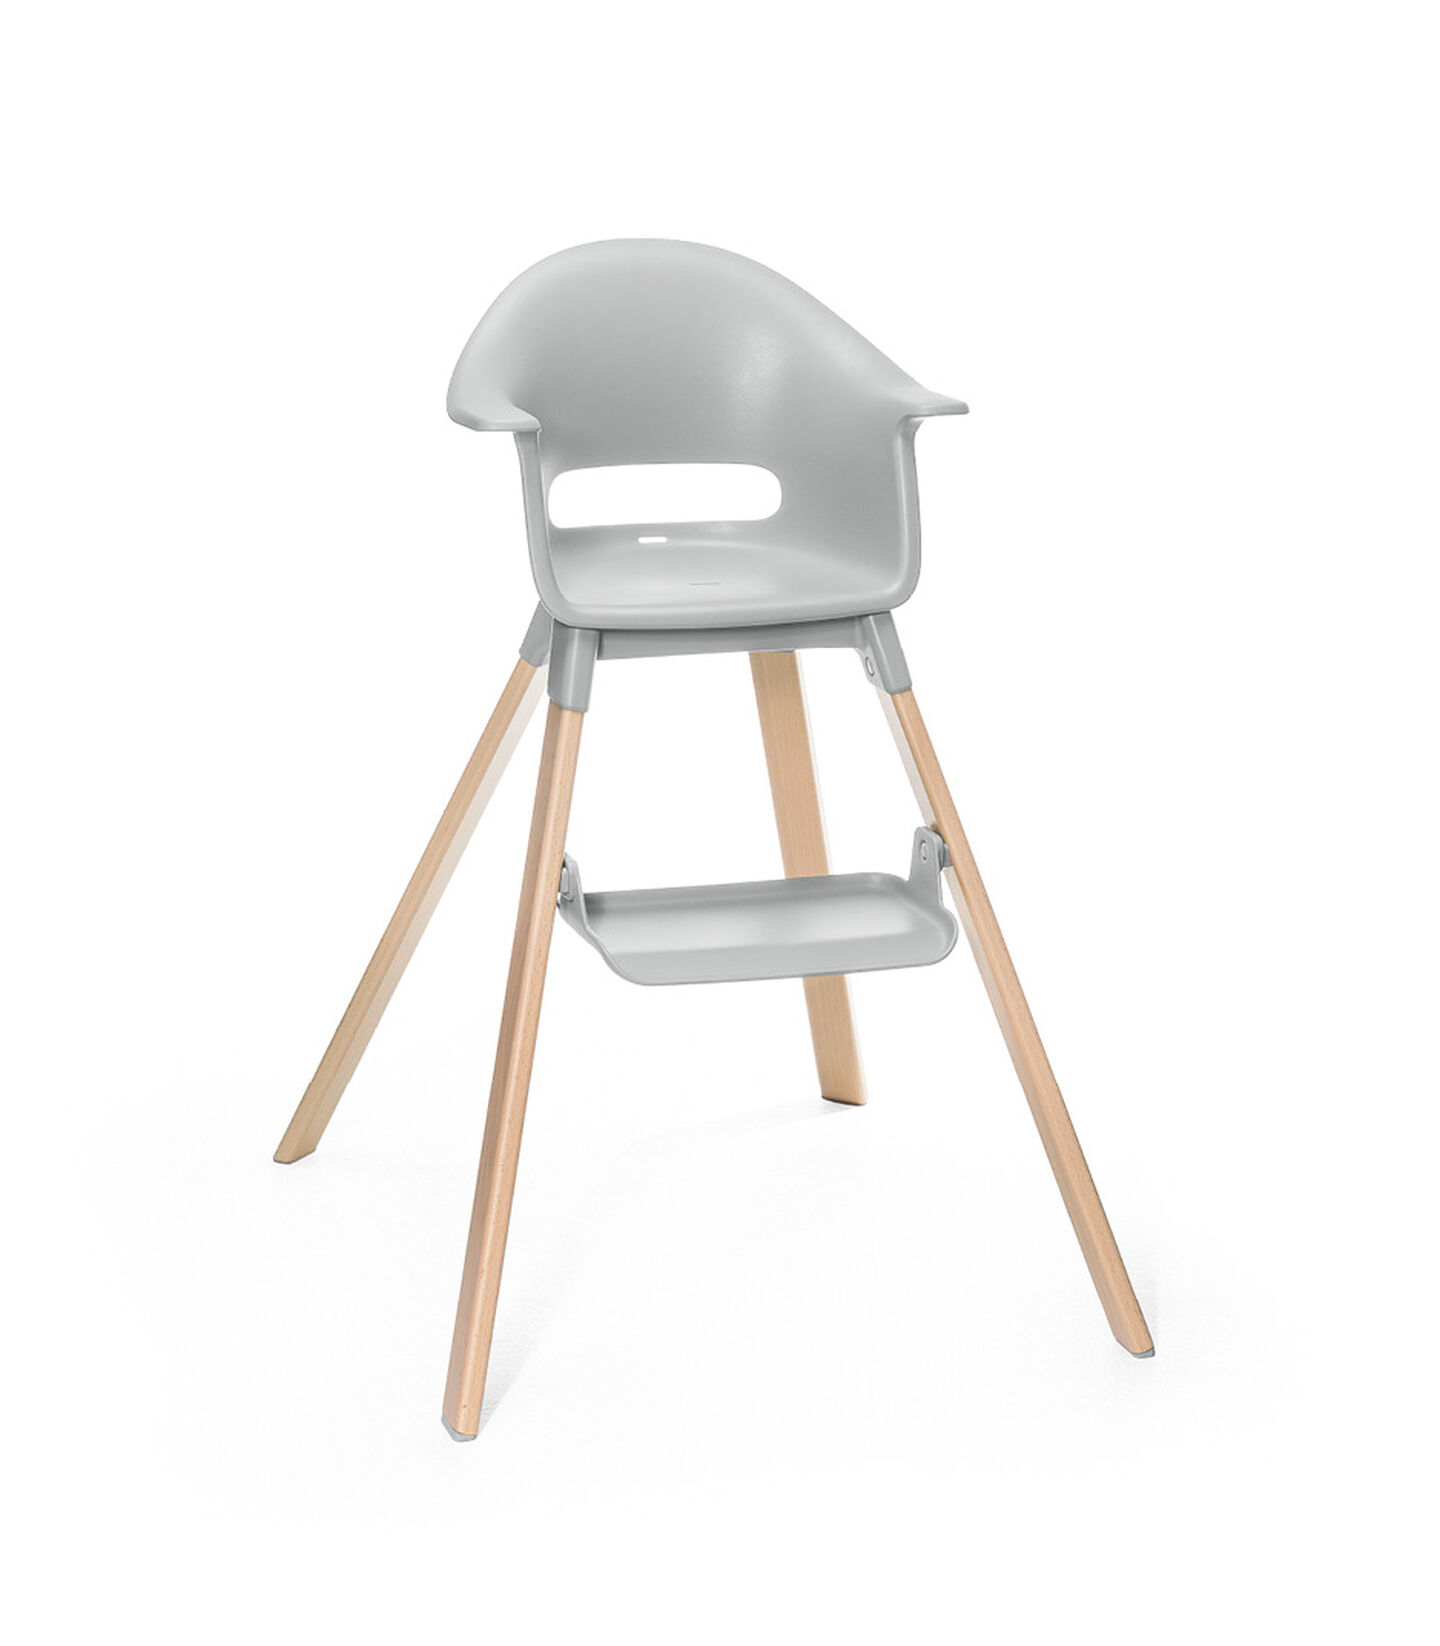 Stokke® Clikk™ High Chair. Natural Beech wood and Light Grey plastic parts. view 3